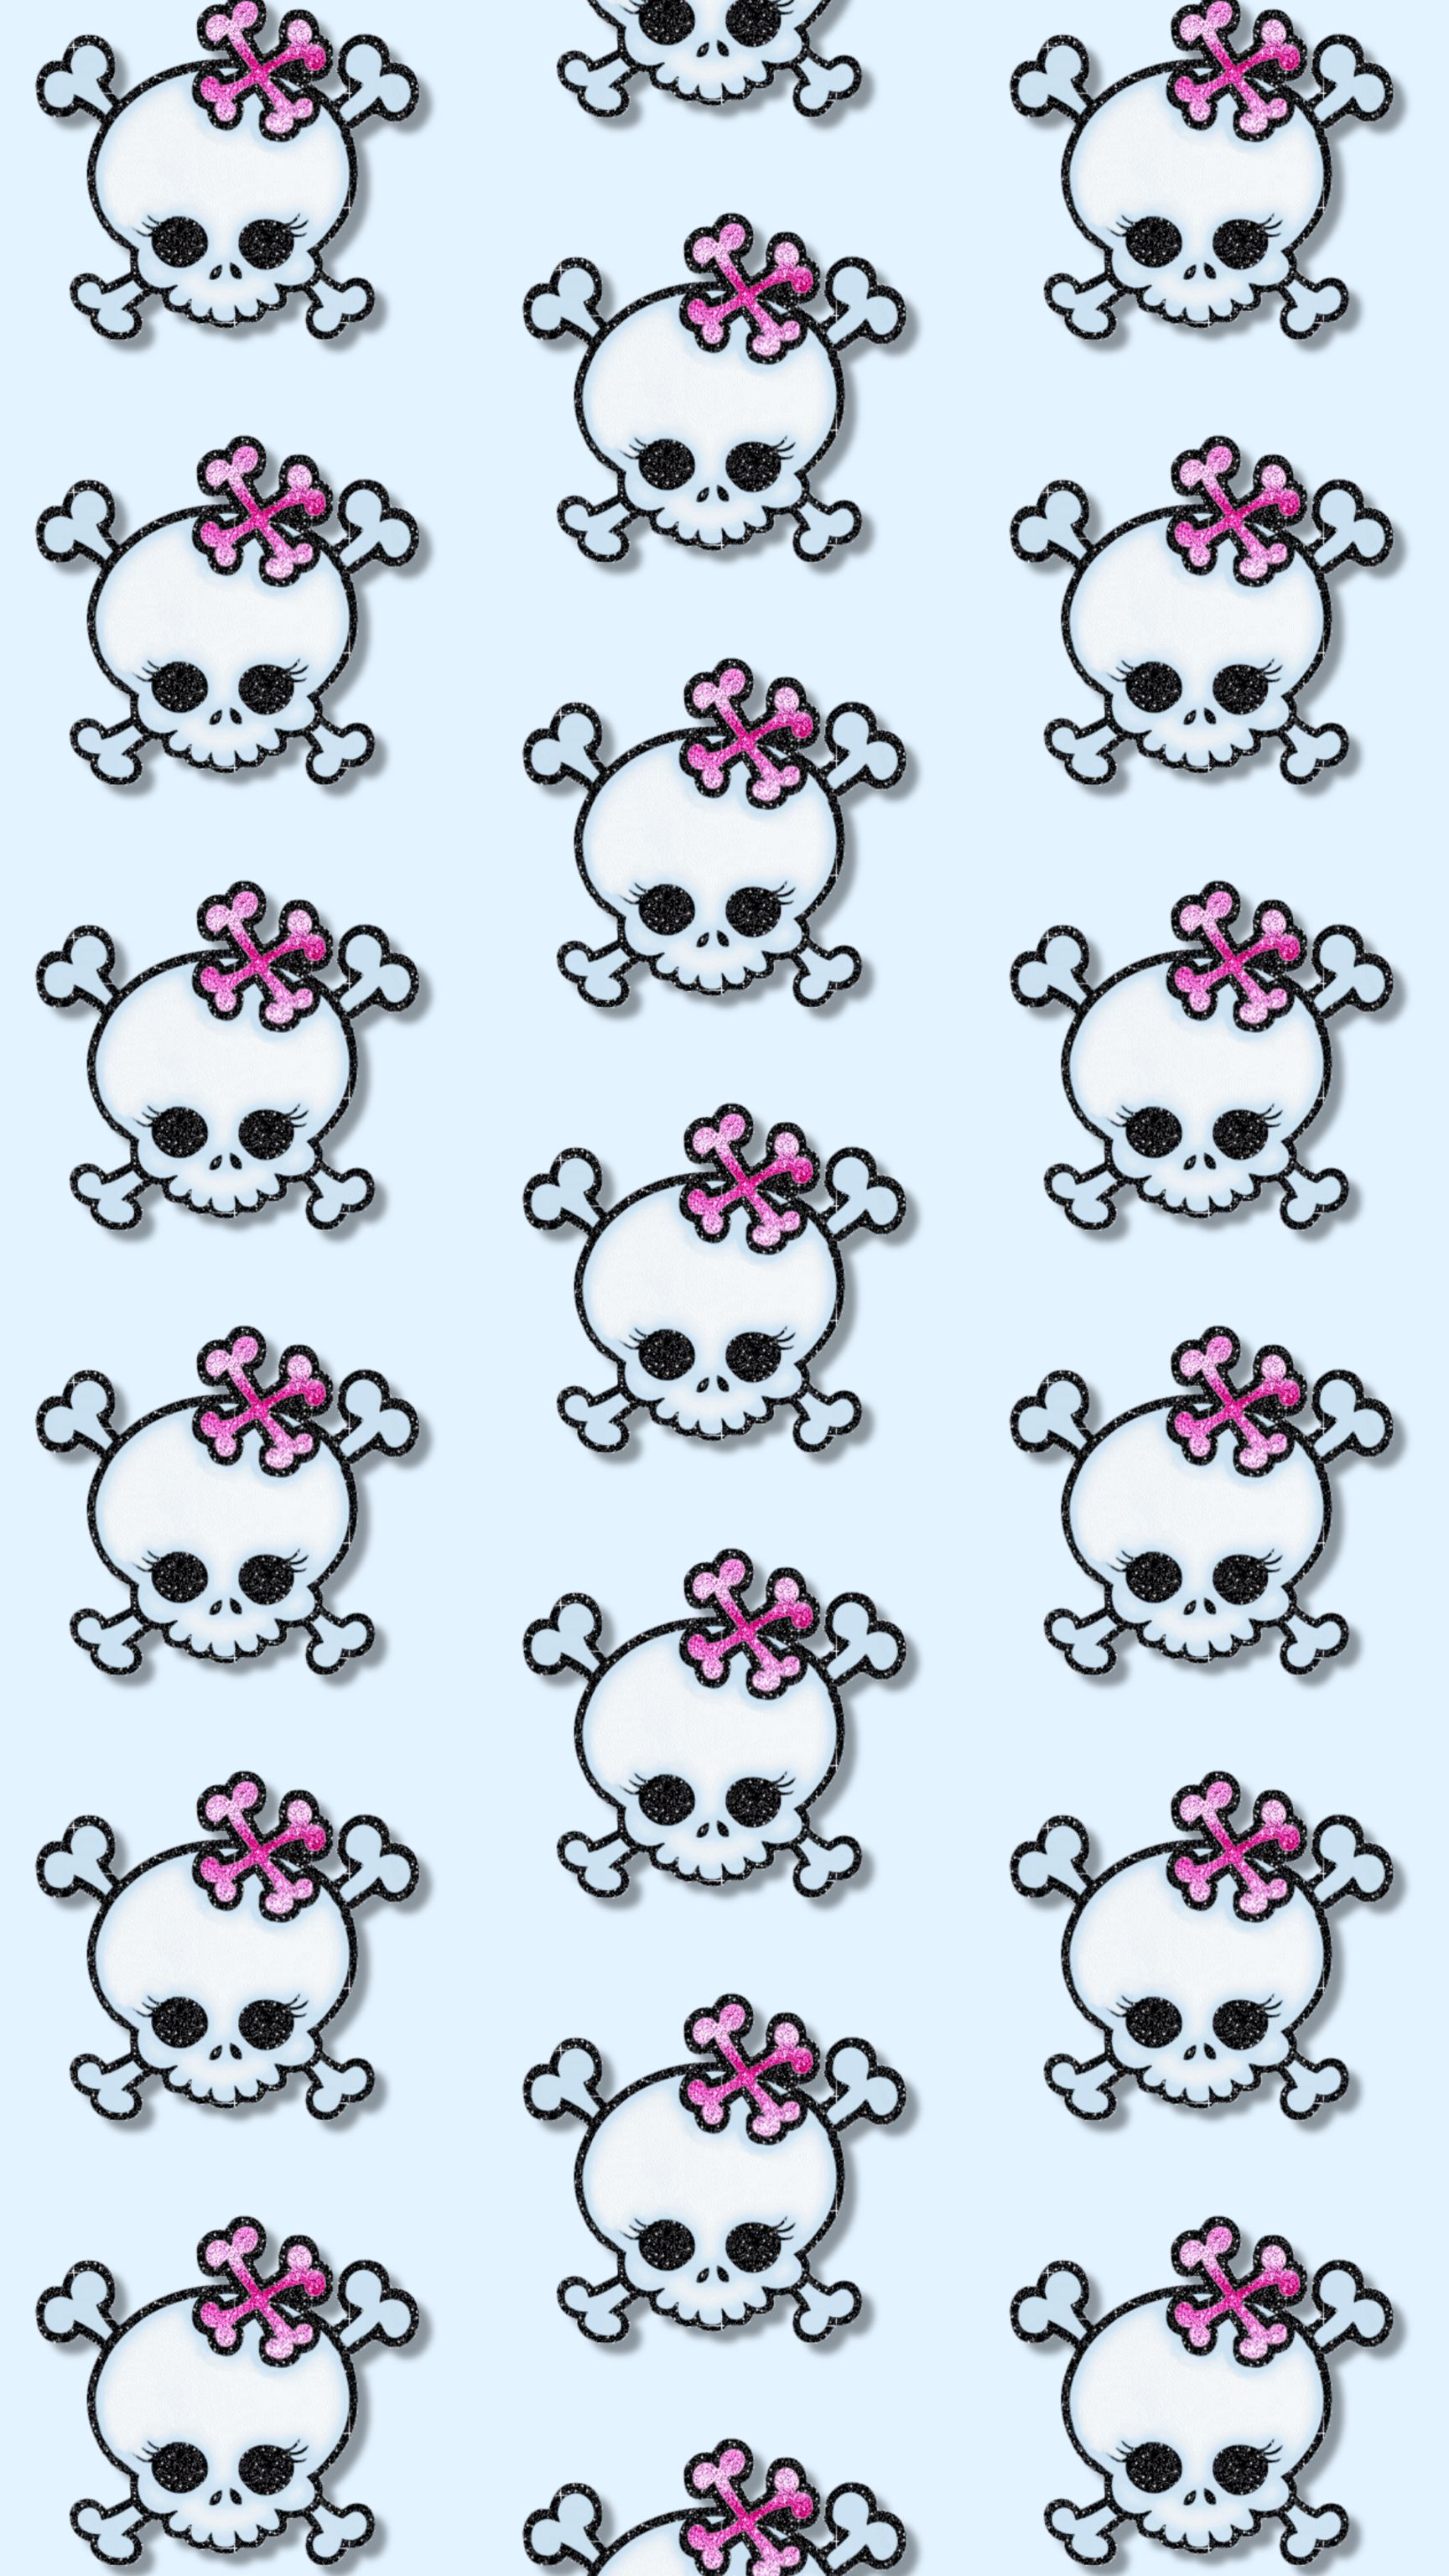 Cute girly skulls wallpaper skull everything pinterest cute girly skulls wallpaper voltagebd